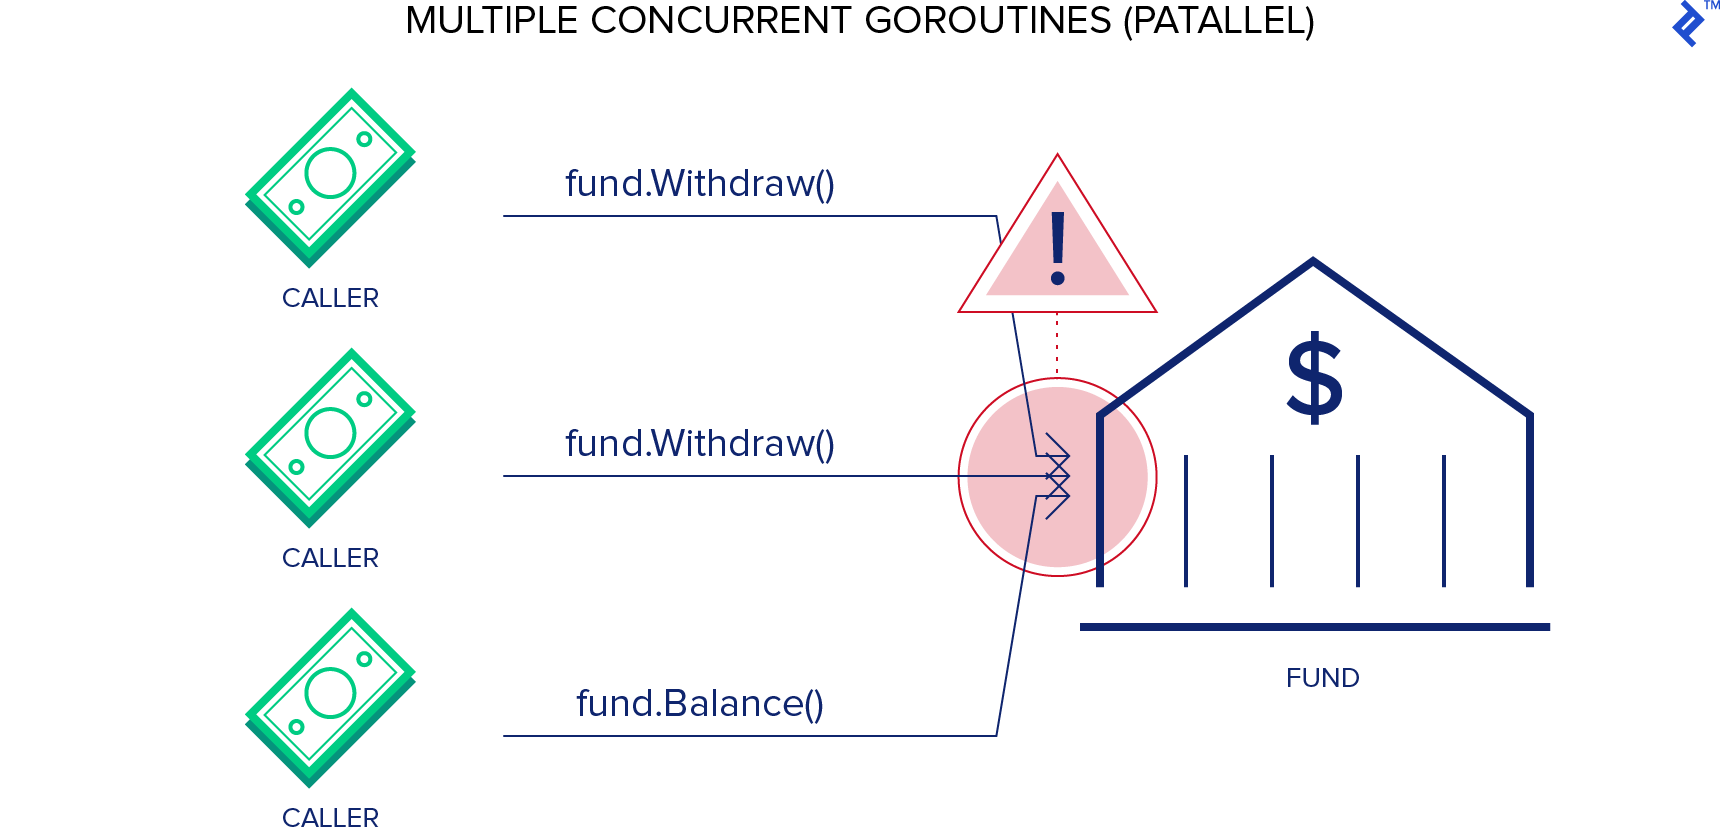 In this Go programming example, the outcome of multiple parallel goroutines is not favorable.